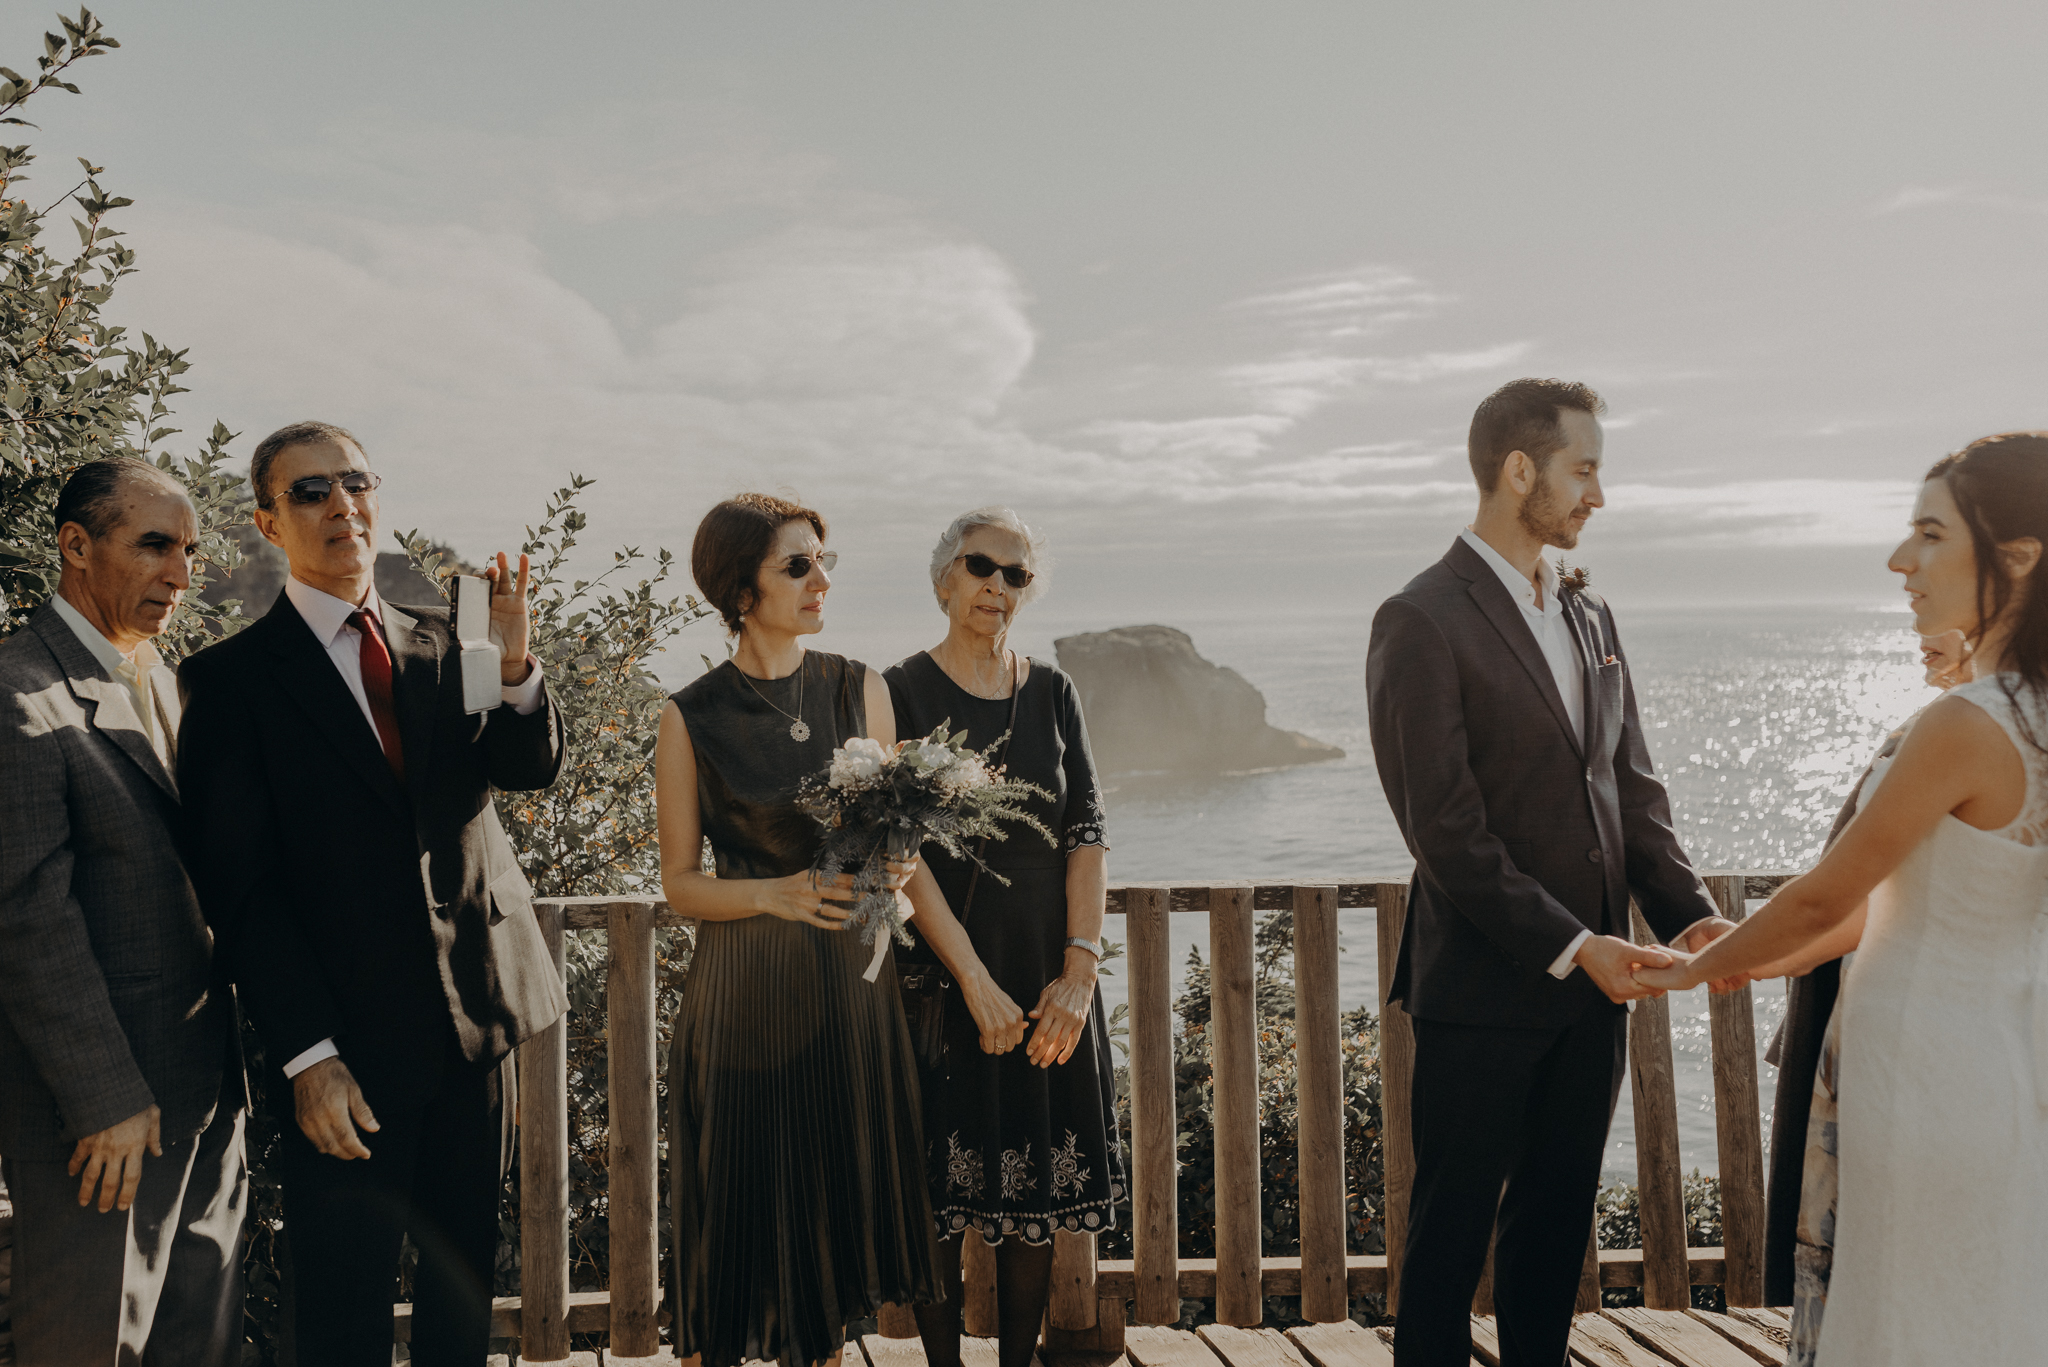 Isaiah + Taylor Photography - Cape Flattery Elopement, Olympia National Forest Wedding Photographer-047.jpg